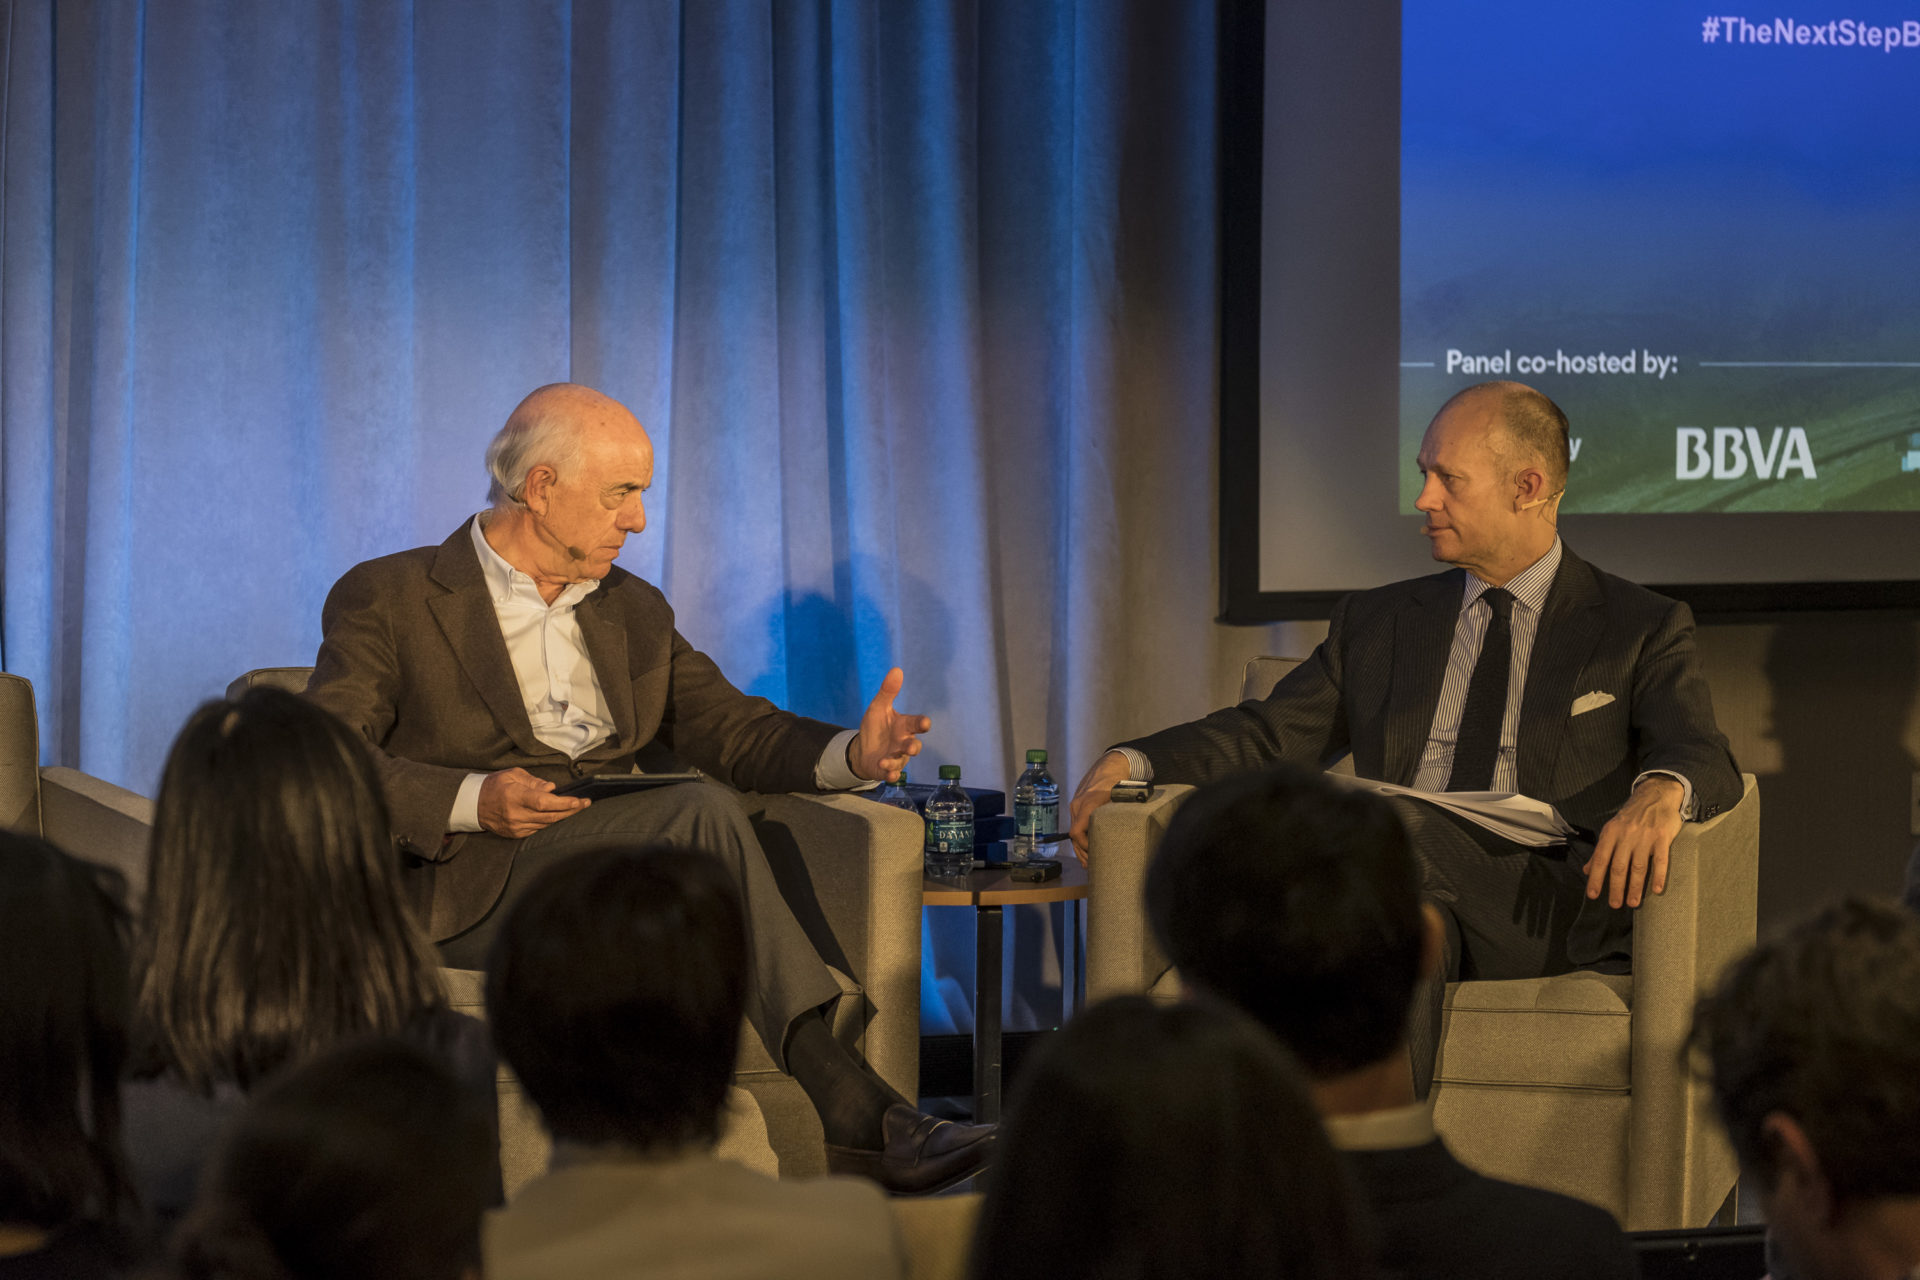 Francisco González, Group Executive Chairman of BBVA, presented the new OpenMind book at the MIT